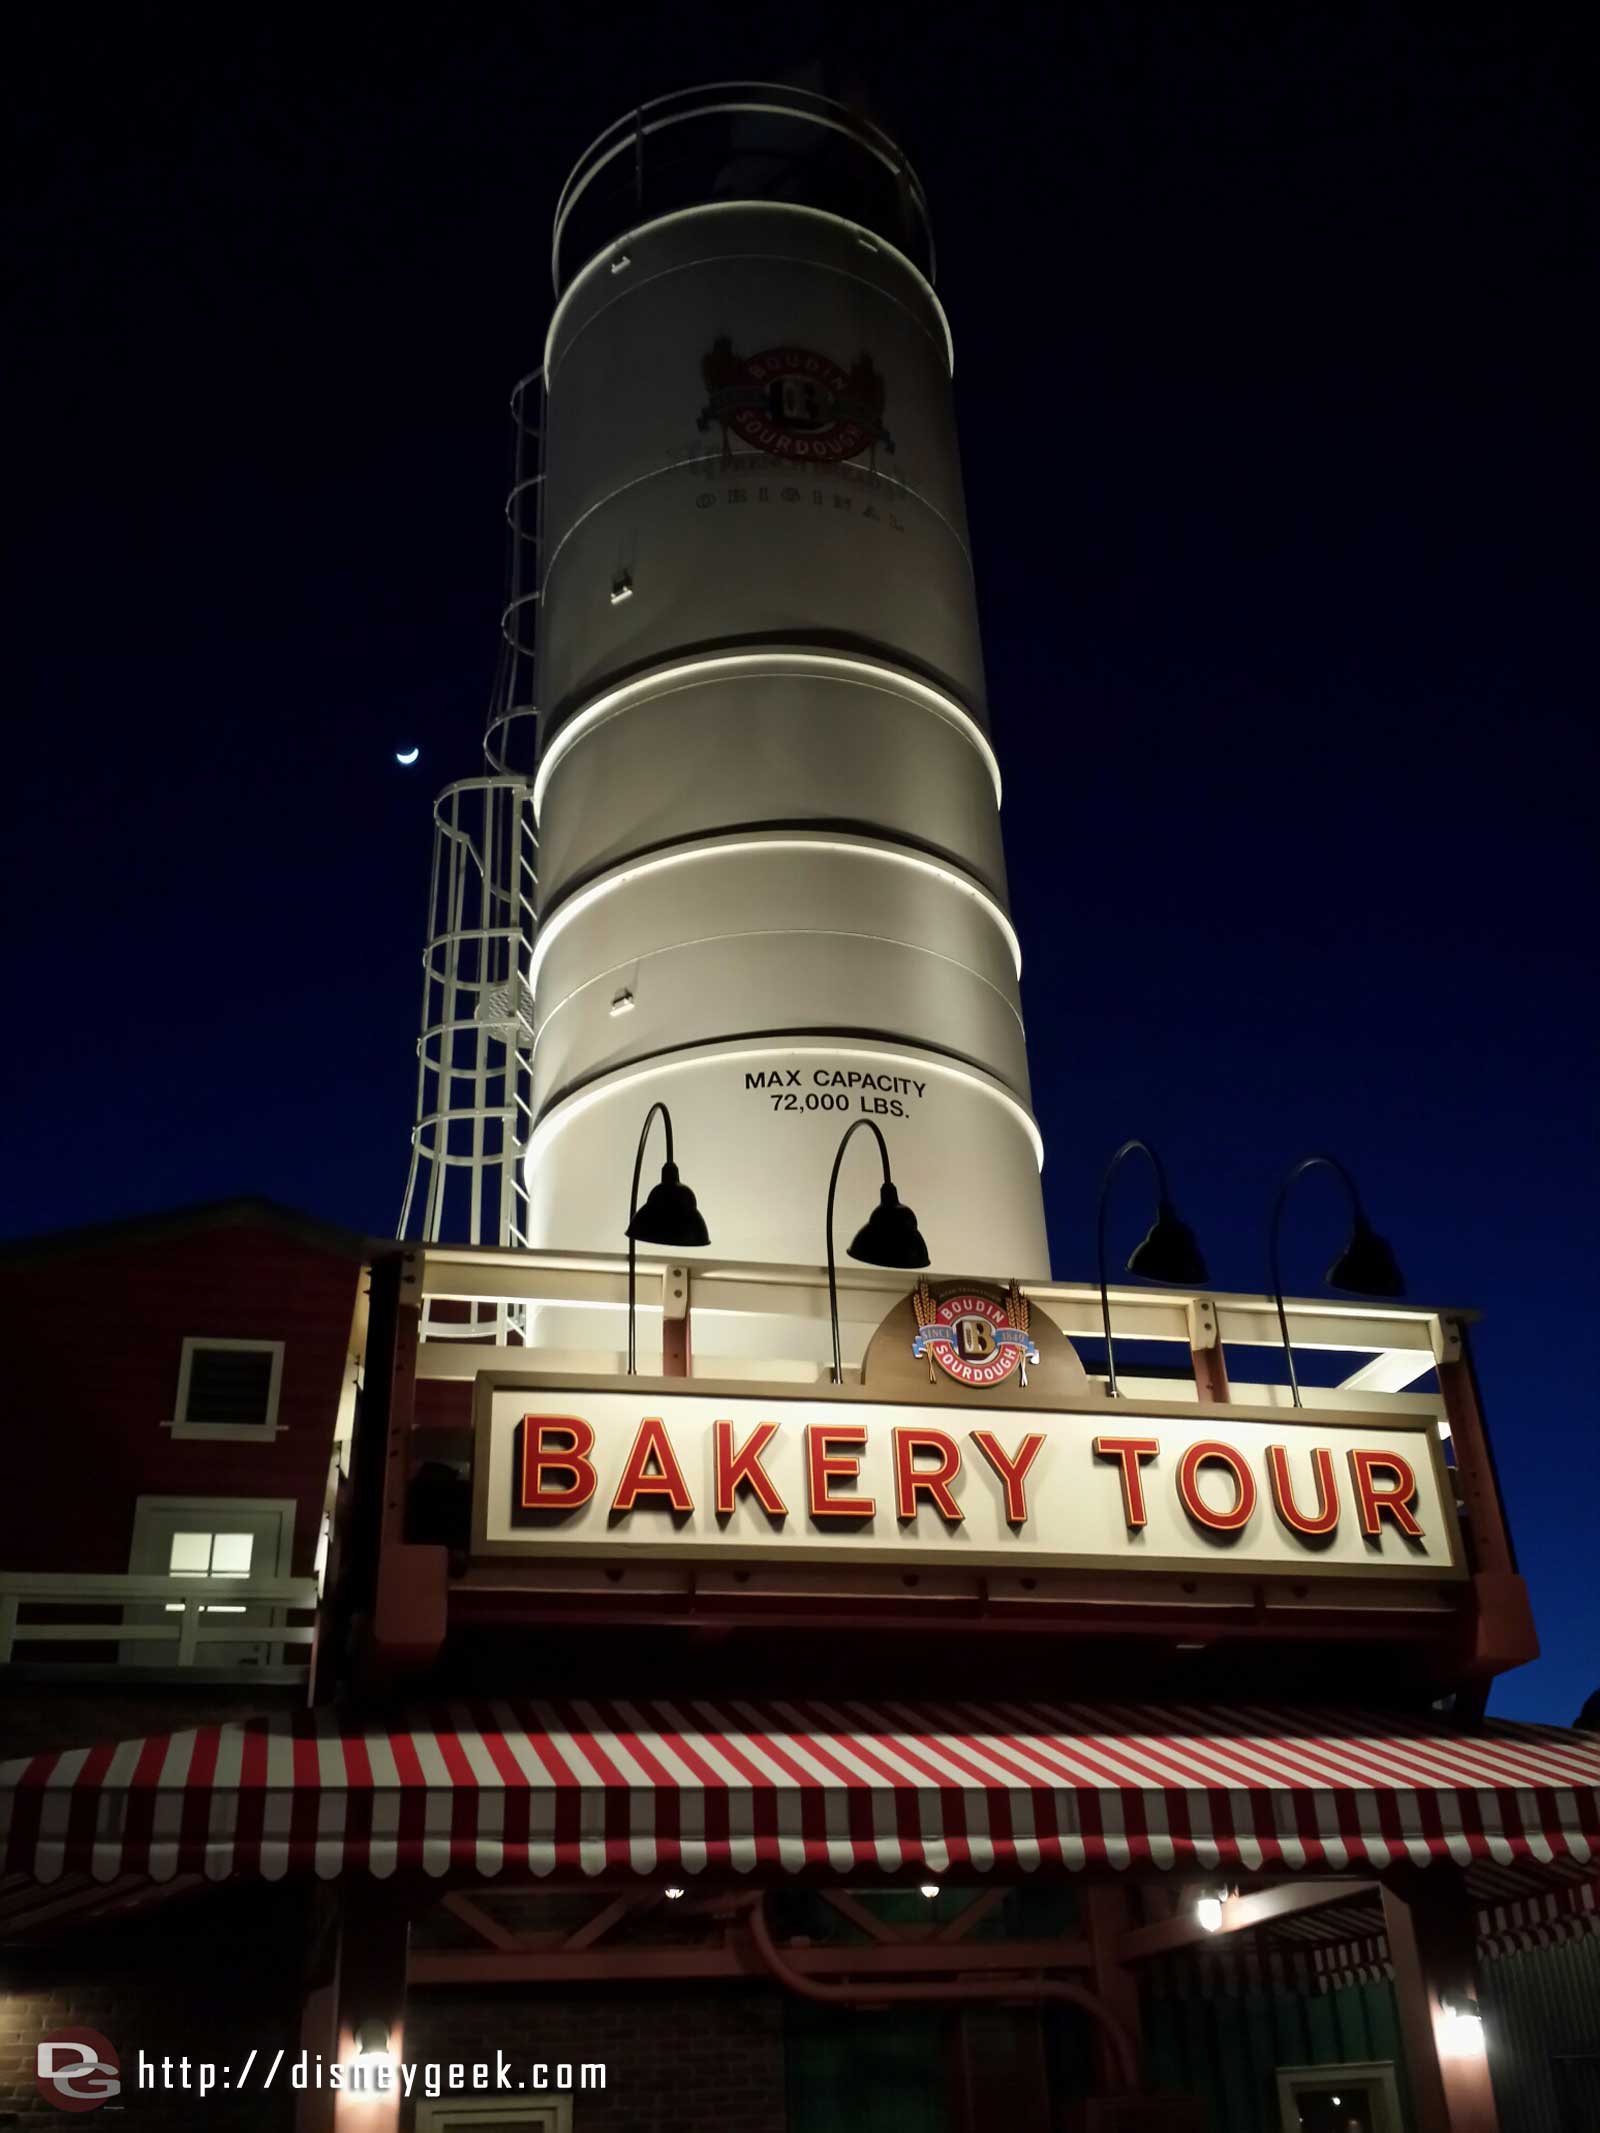 A new sign & awning for the Bakery Tour